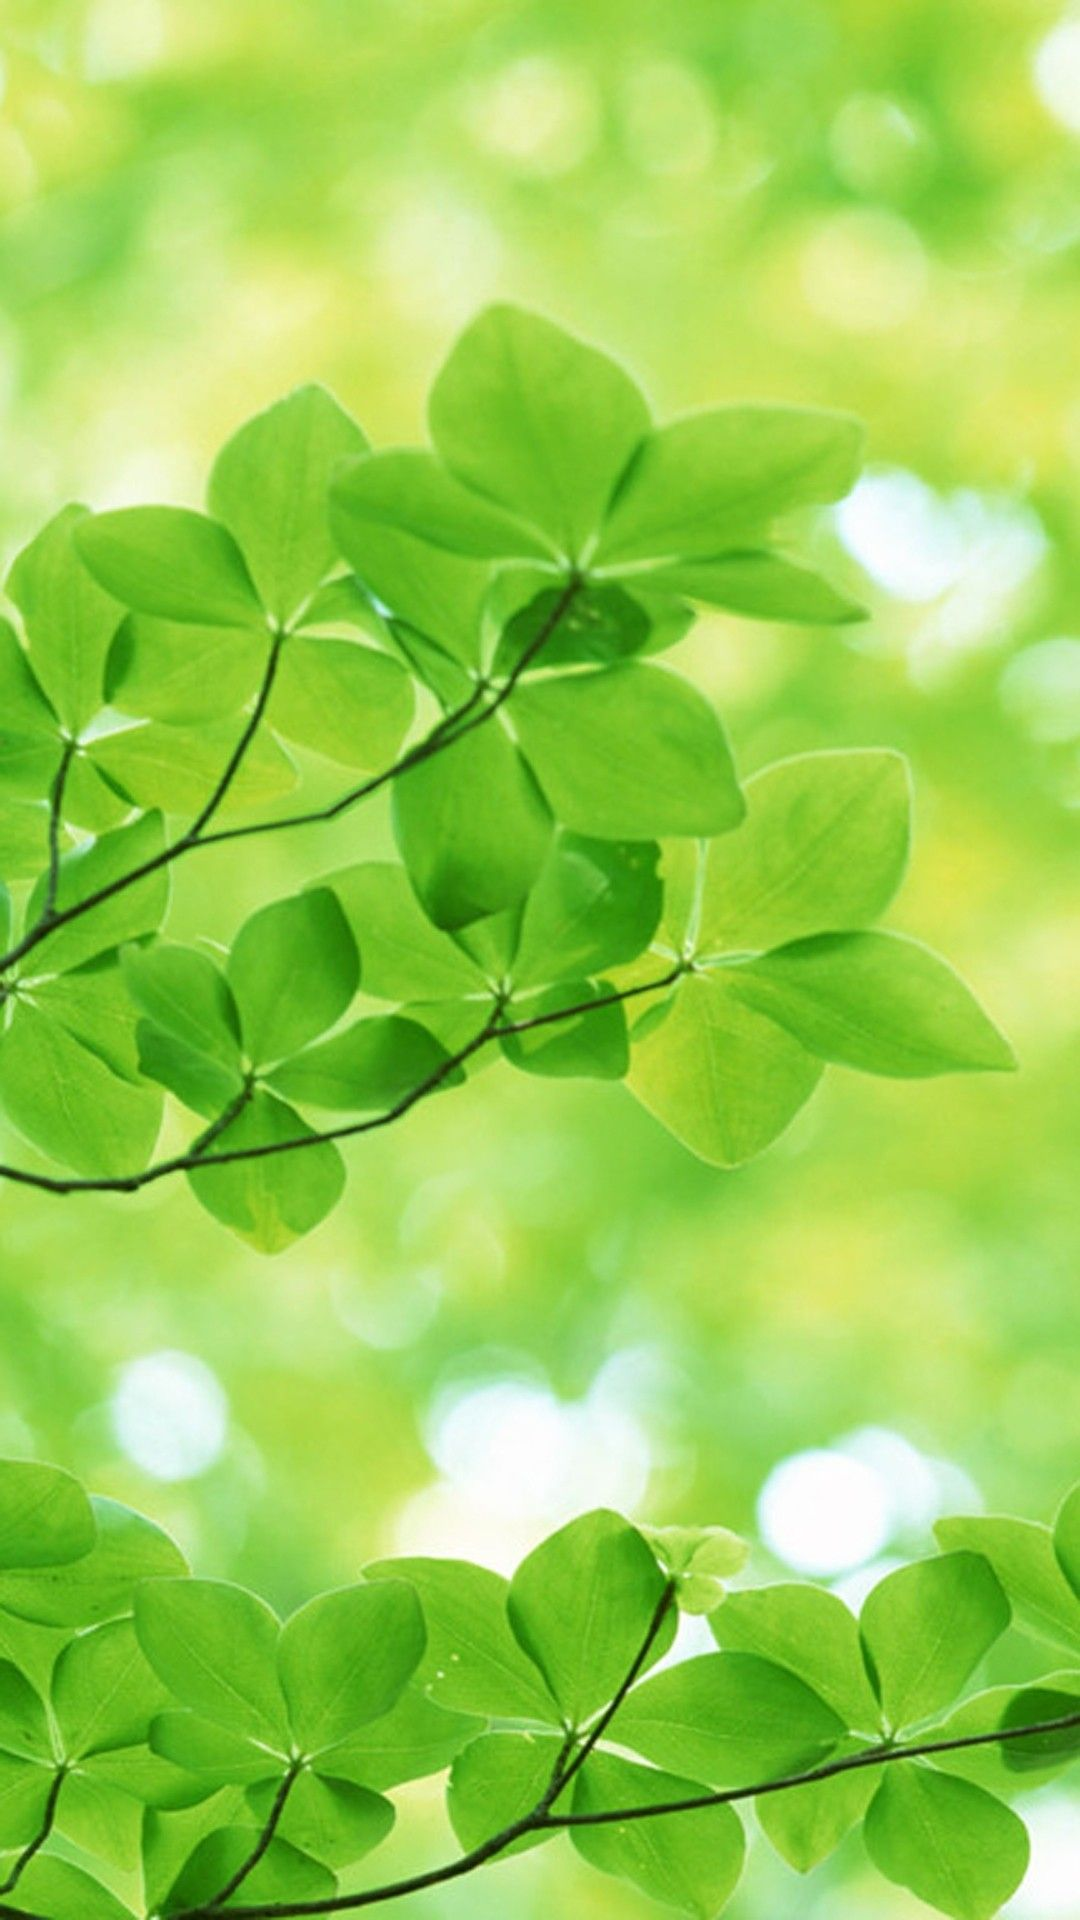 Nature Sunshine Green Leaves Iphone 6 Plus Wallpaper  Tree,